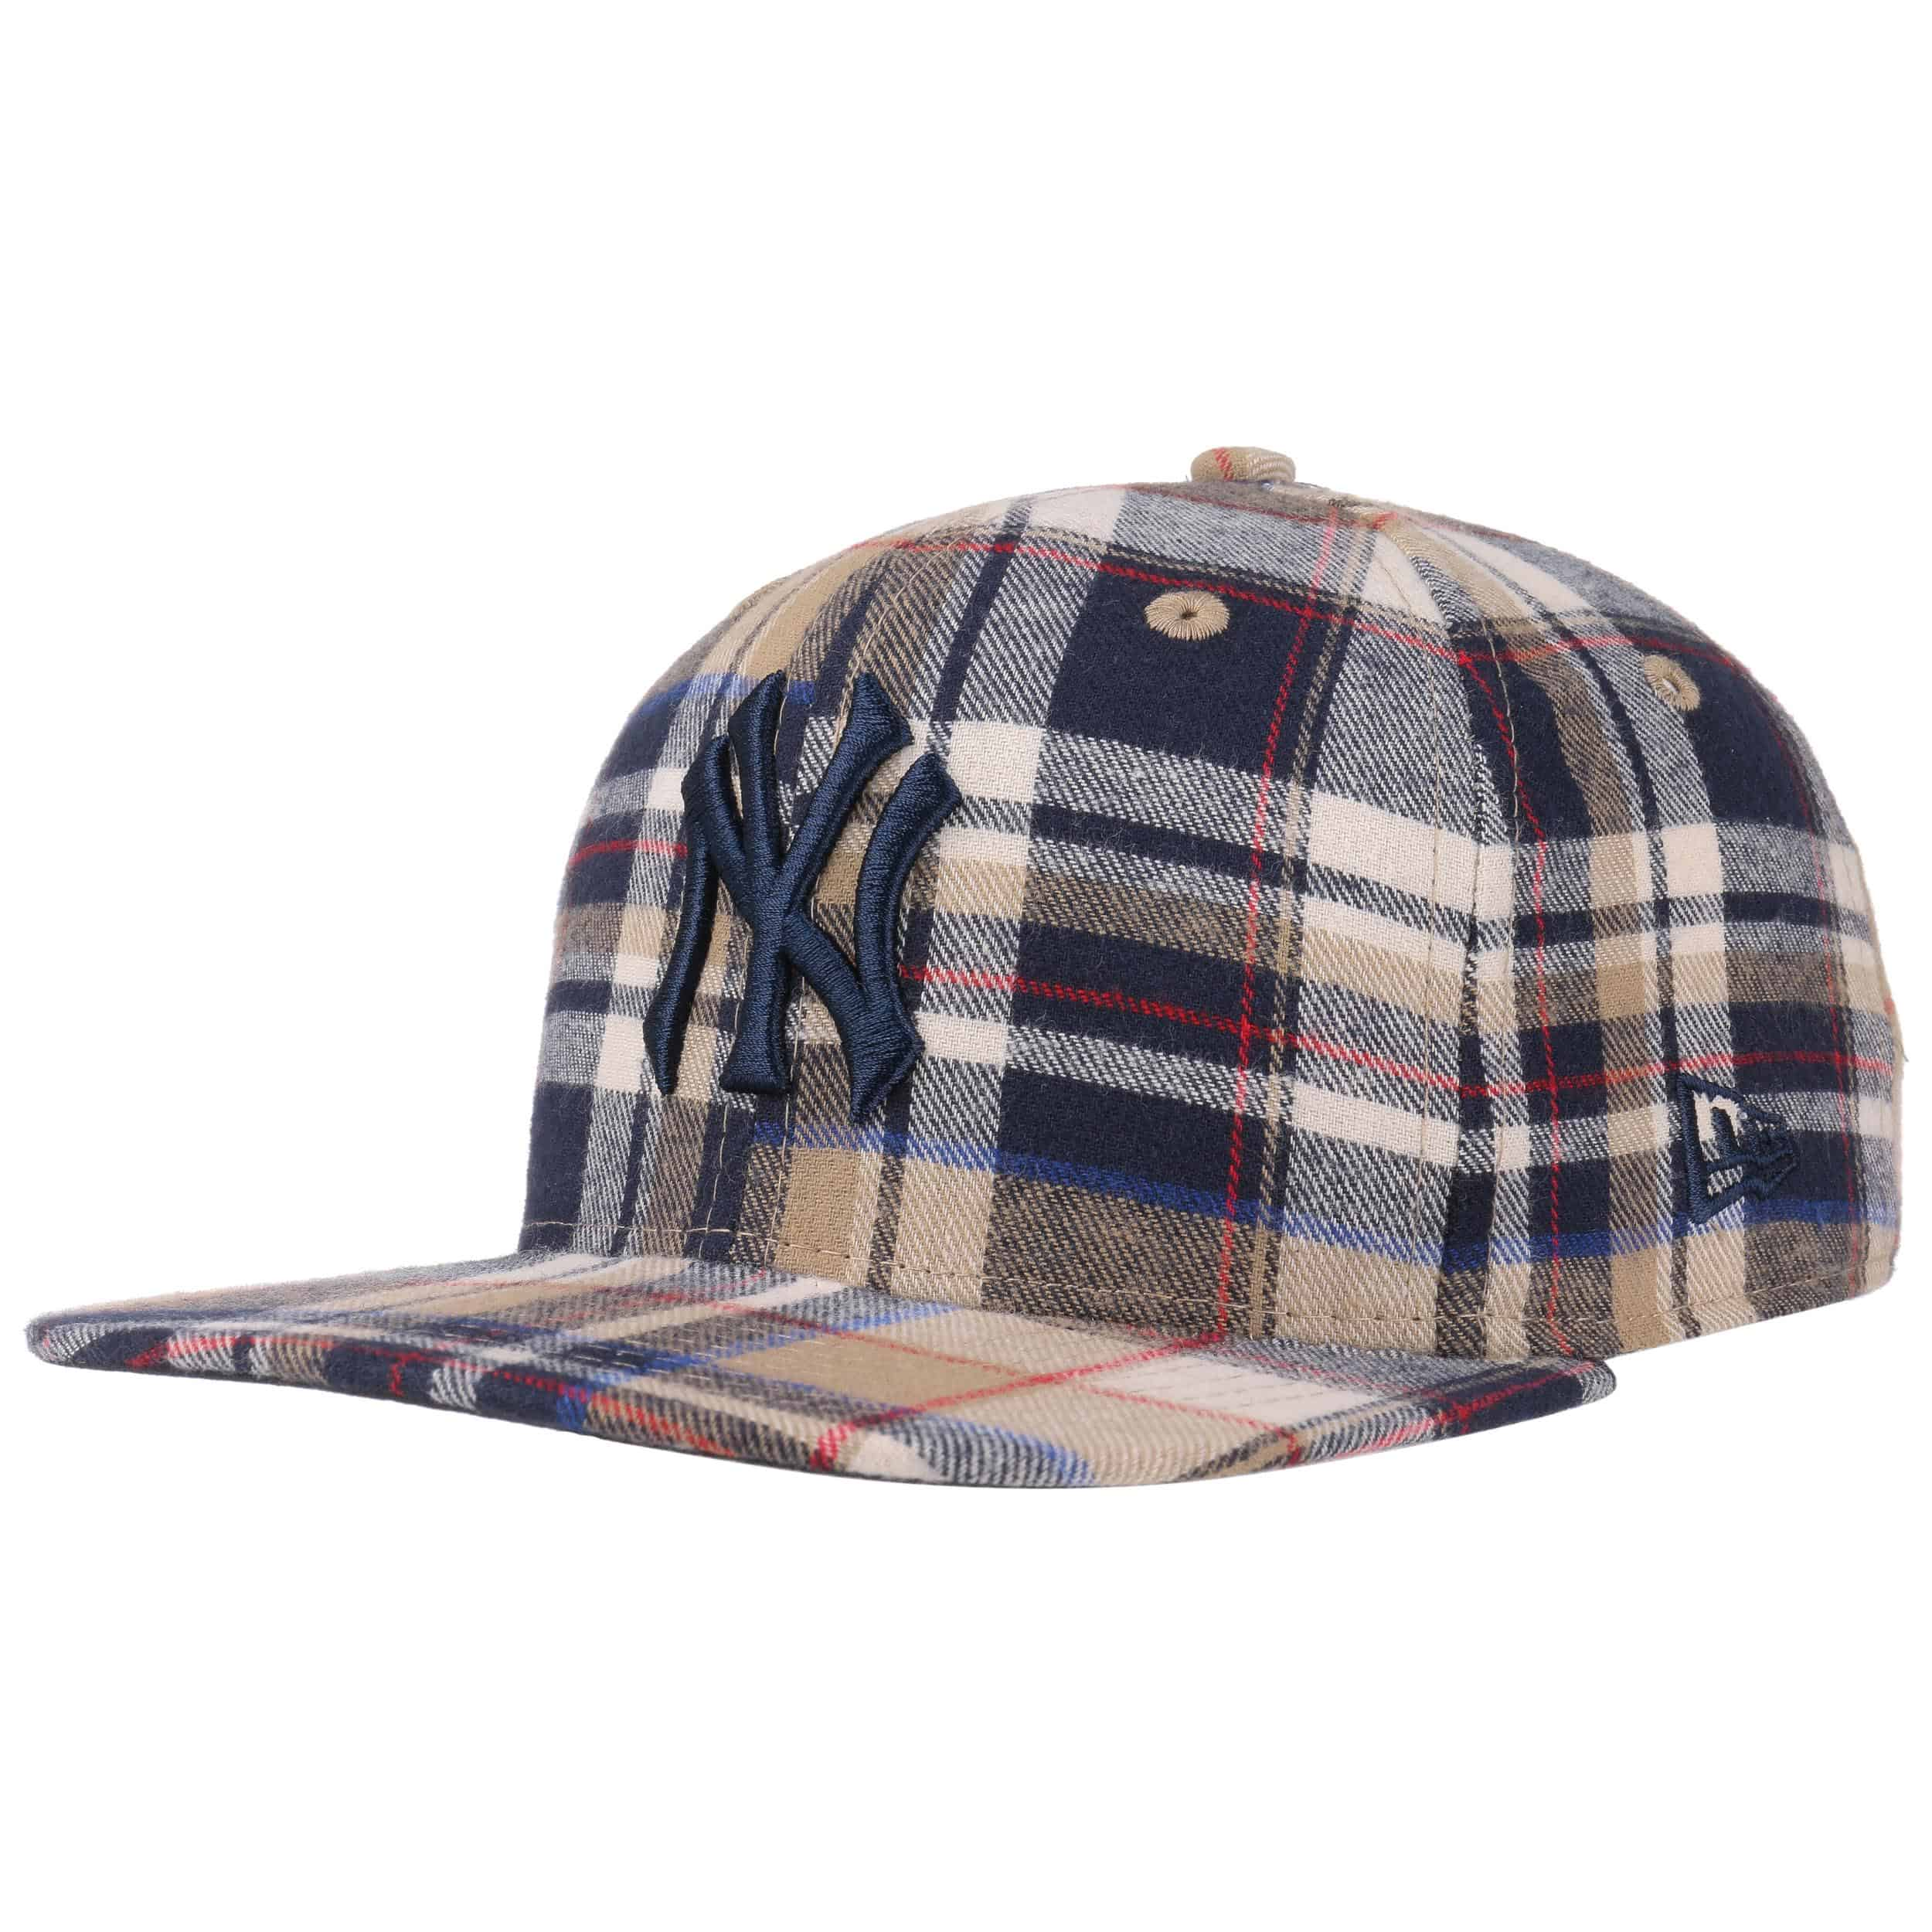 c4fe75282d3 9Fifty Spring Plaid Yankees Cap. by New Era